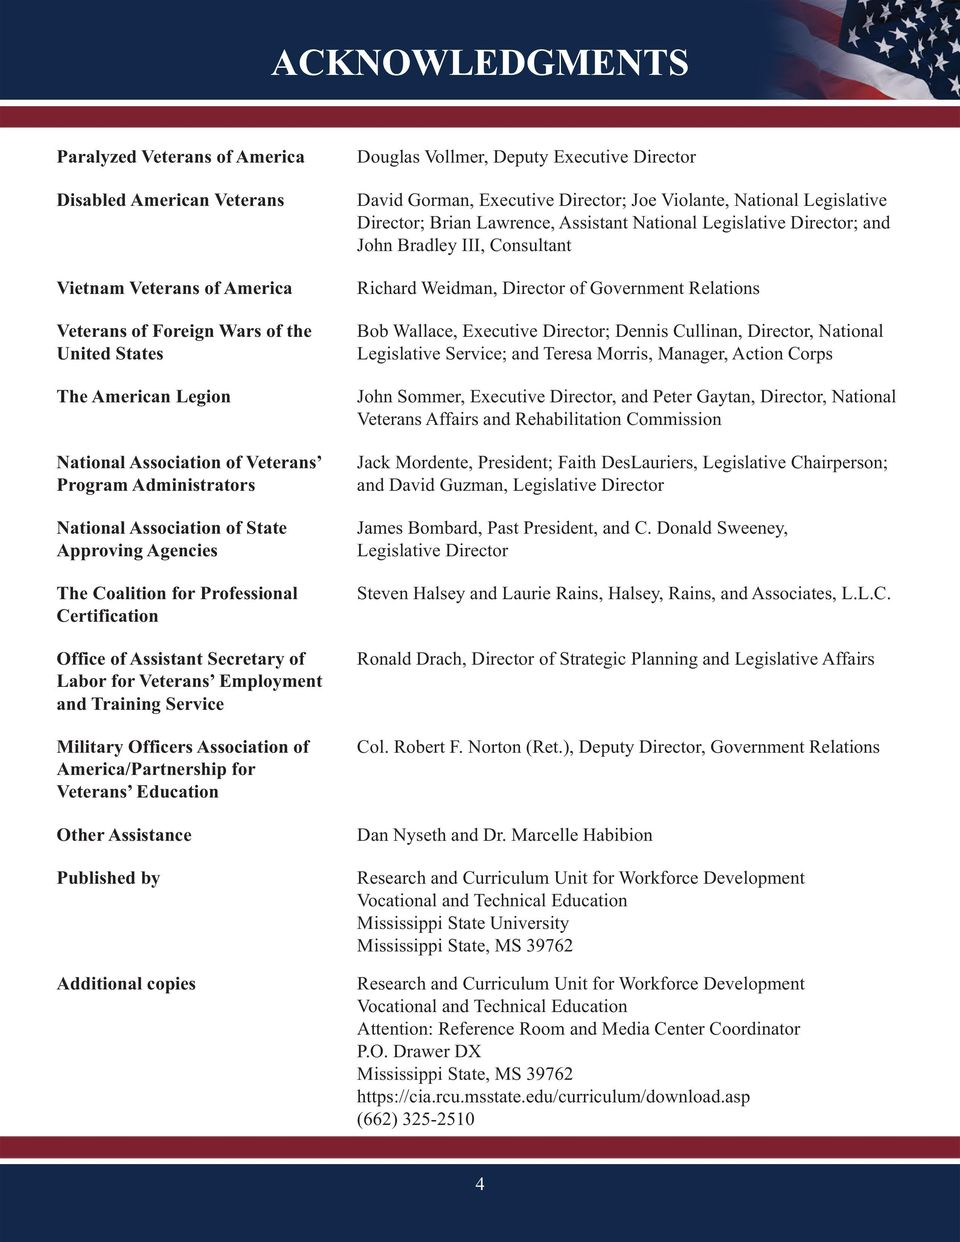 Service Military Officers Association of America/Partnership for Veterans Education Other Assistance Published by Additional copies Douglas Vollmer, Deputy Executive Director David Gorman, Executive